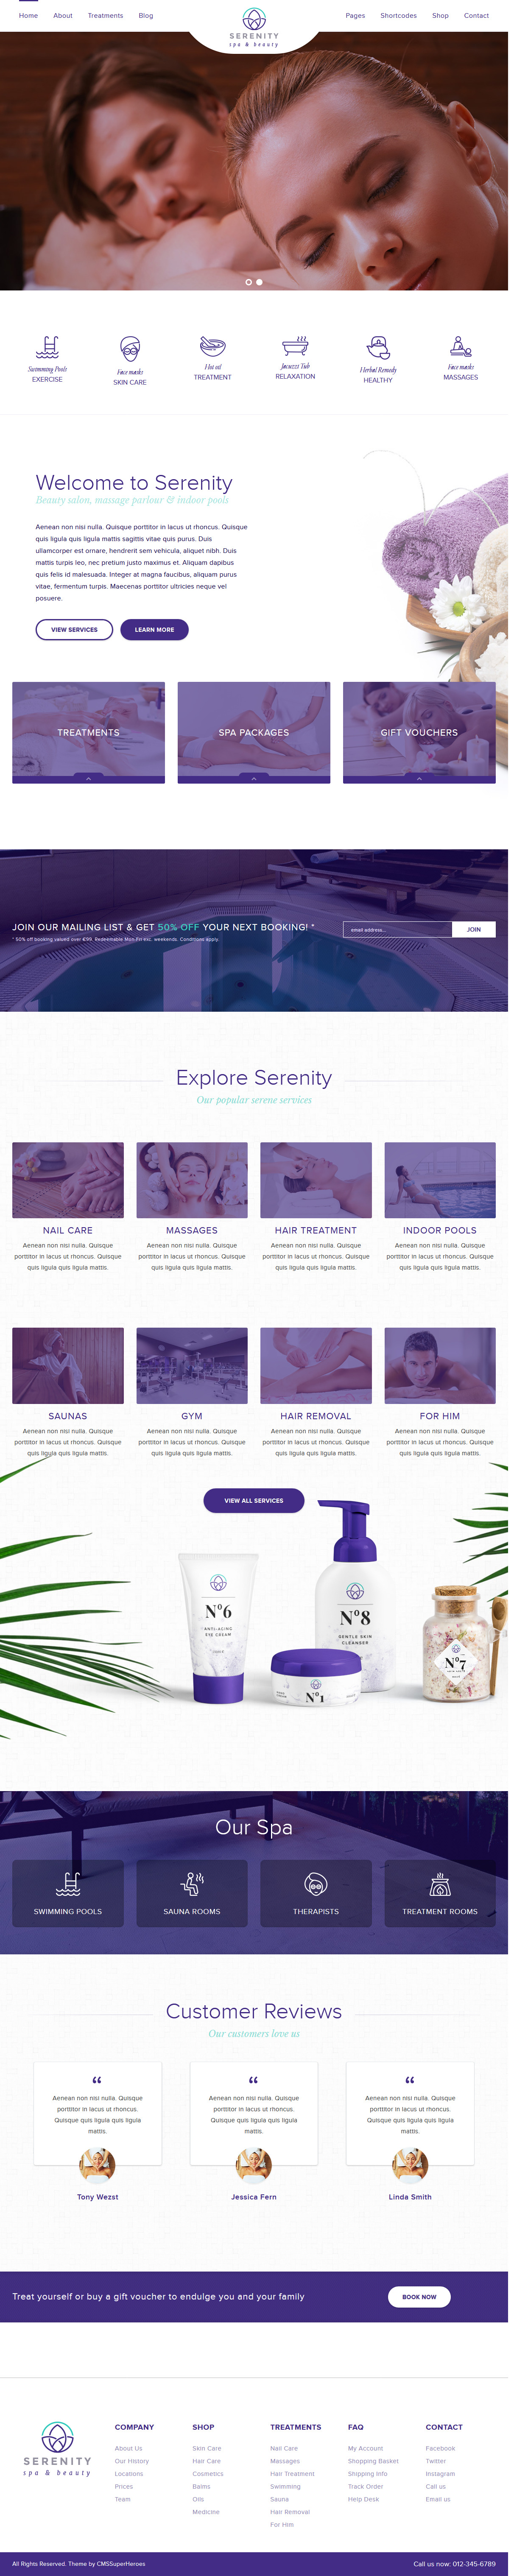 Serenity Spa & Beauty - Best Premium Spa and Beauty WordPress Theme